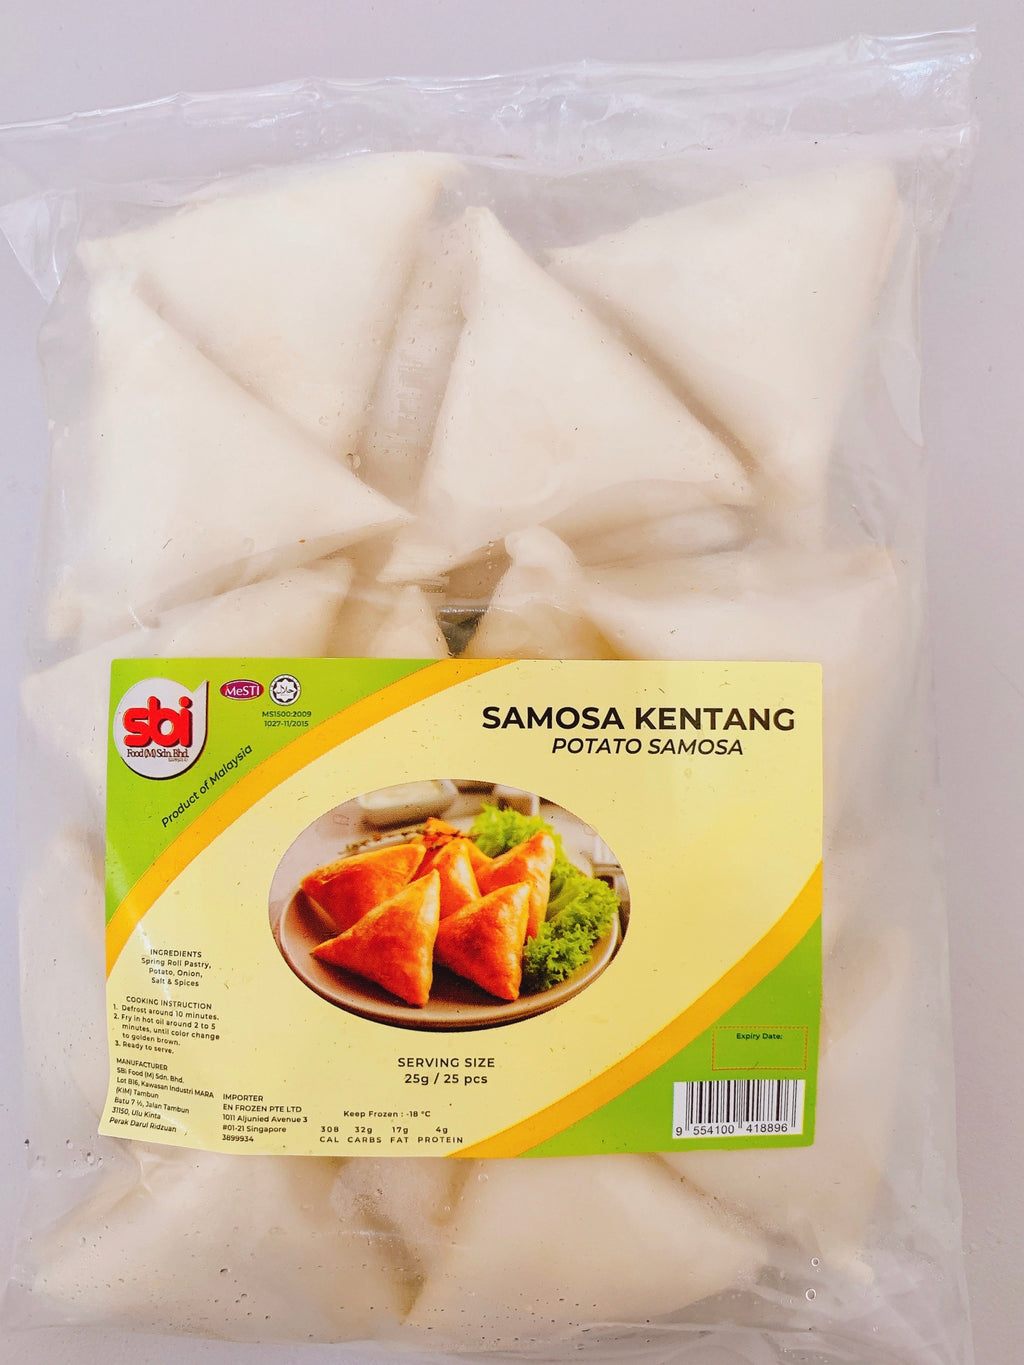 SBI - Samosa Potatoes Kentang (25 pcs)